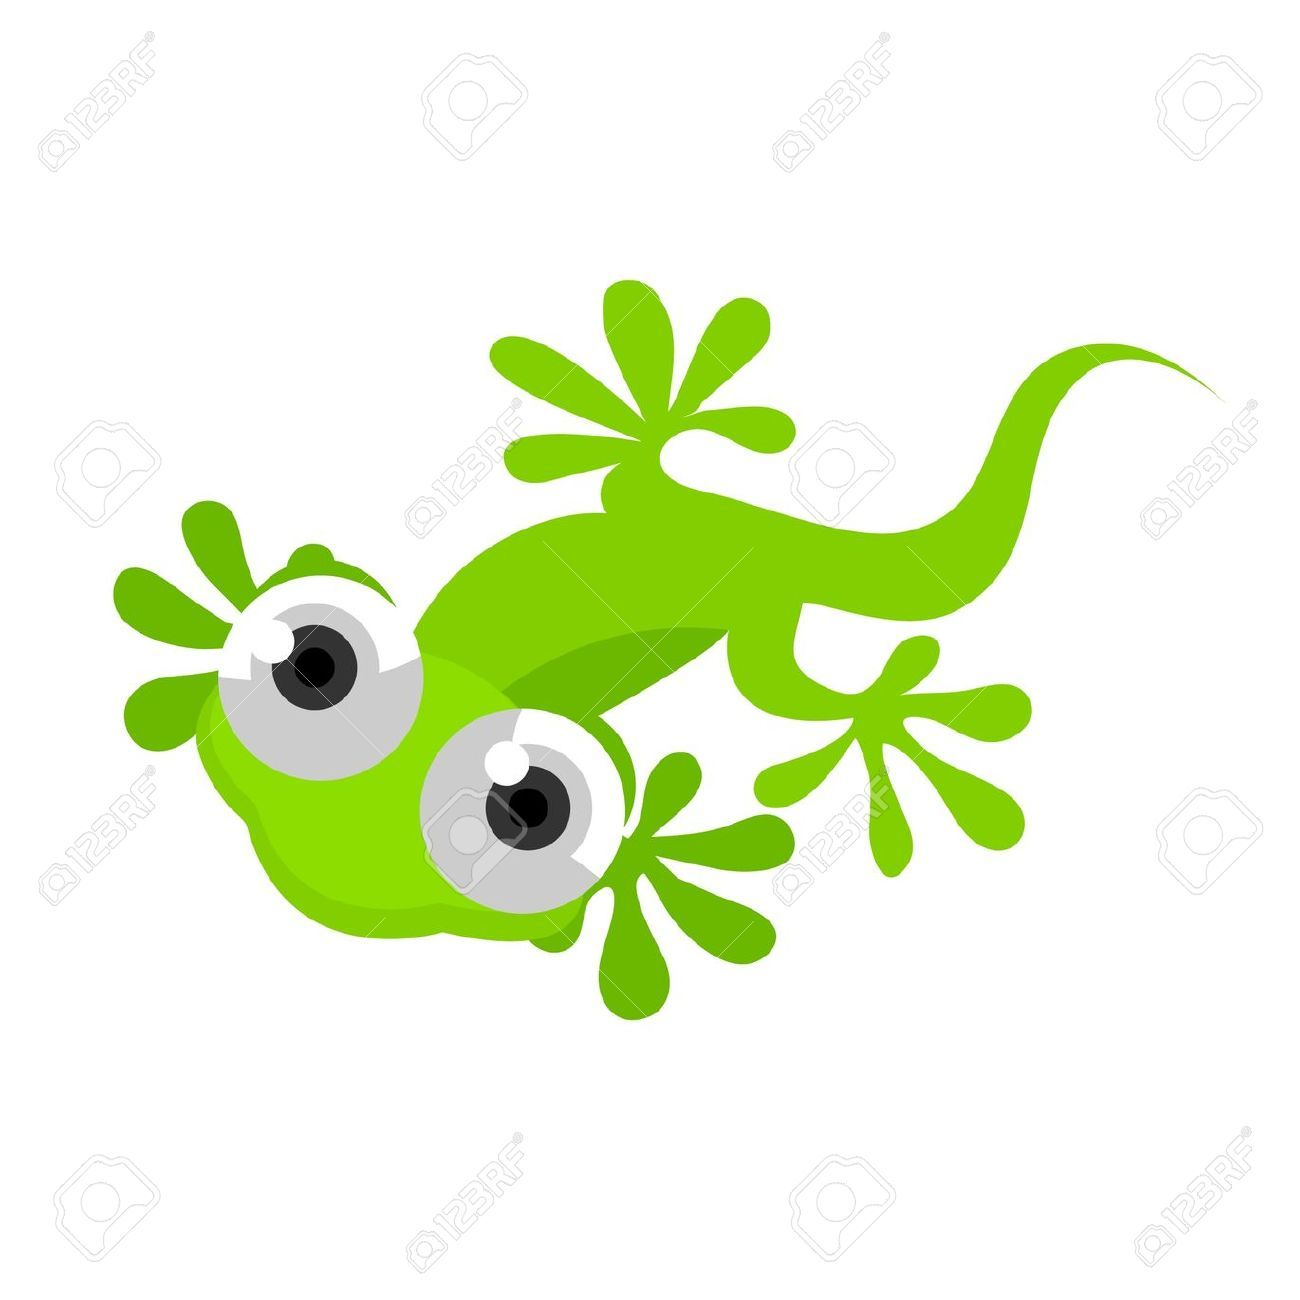 Cute Lizard Clipart